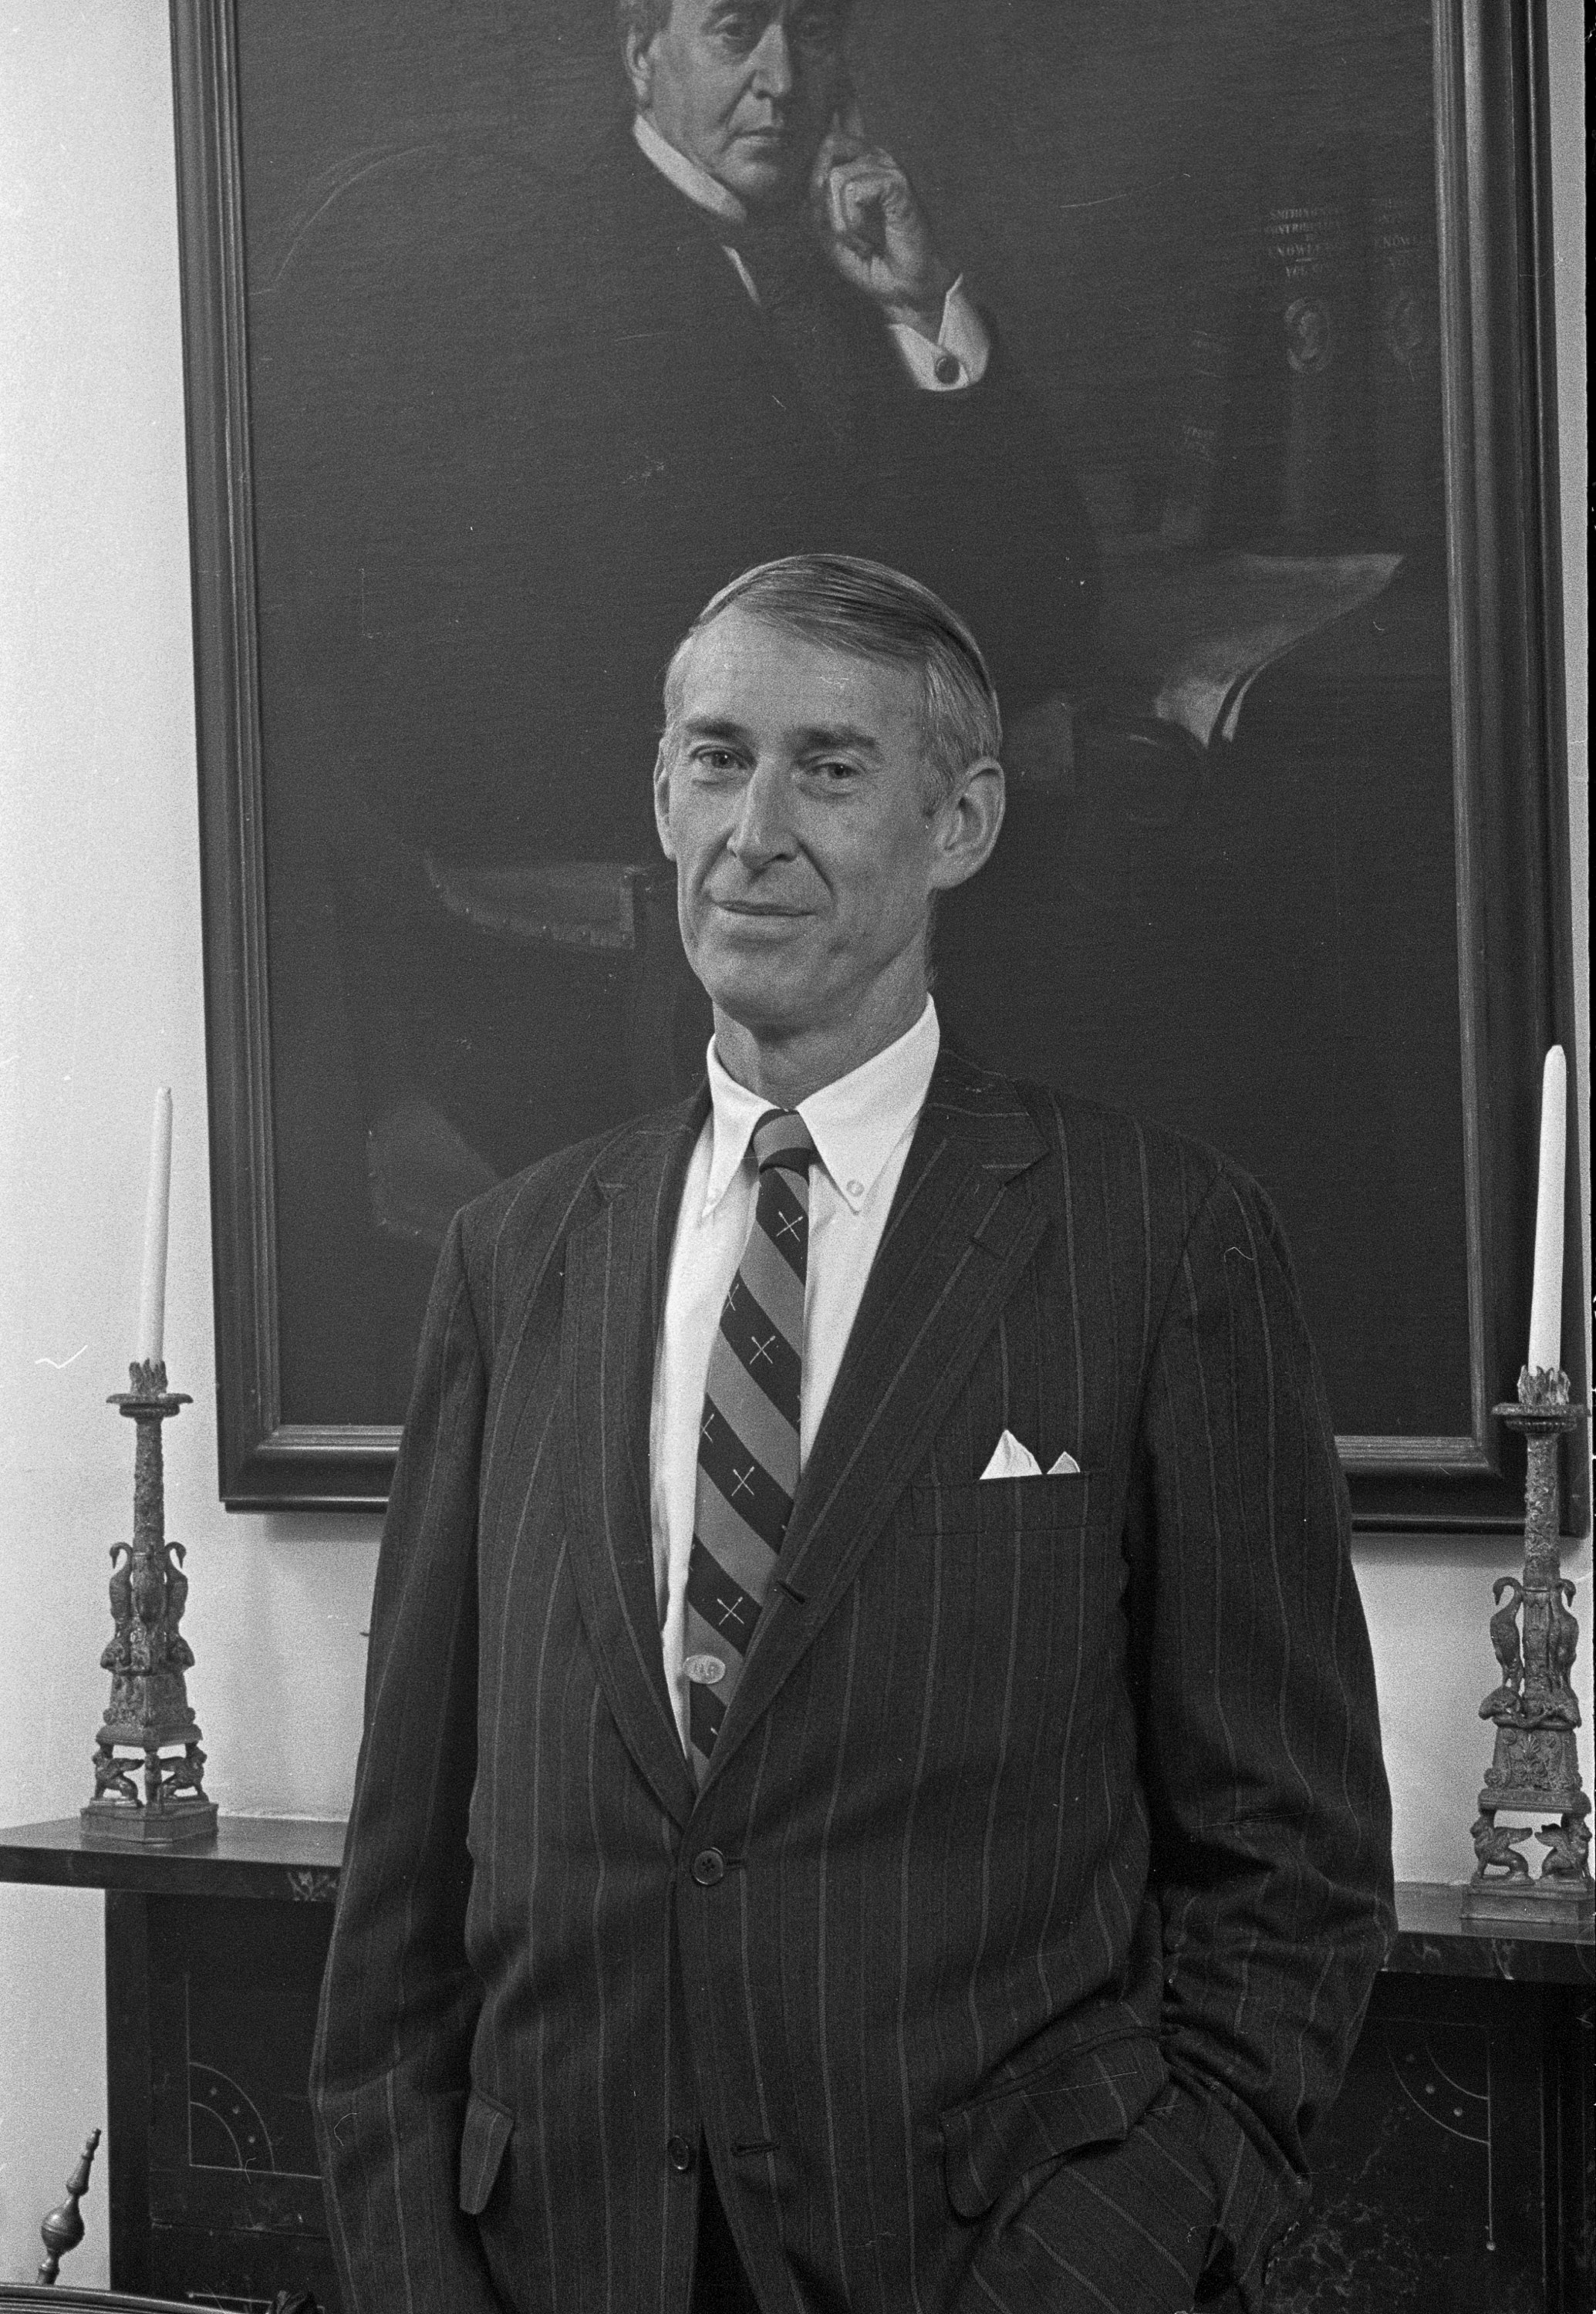 Dr. David Challinor standing in front of a large painting of first Smithsonian Secretary Joseph Henr